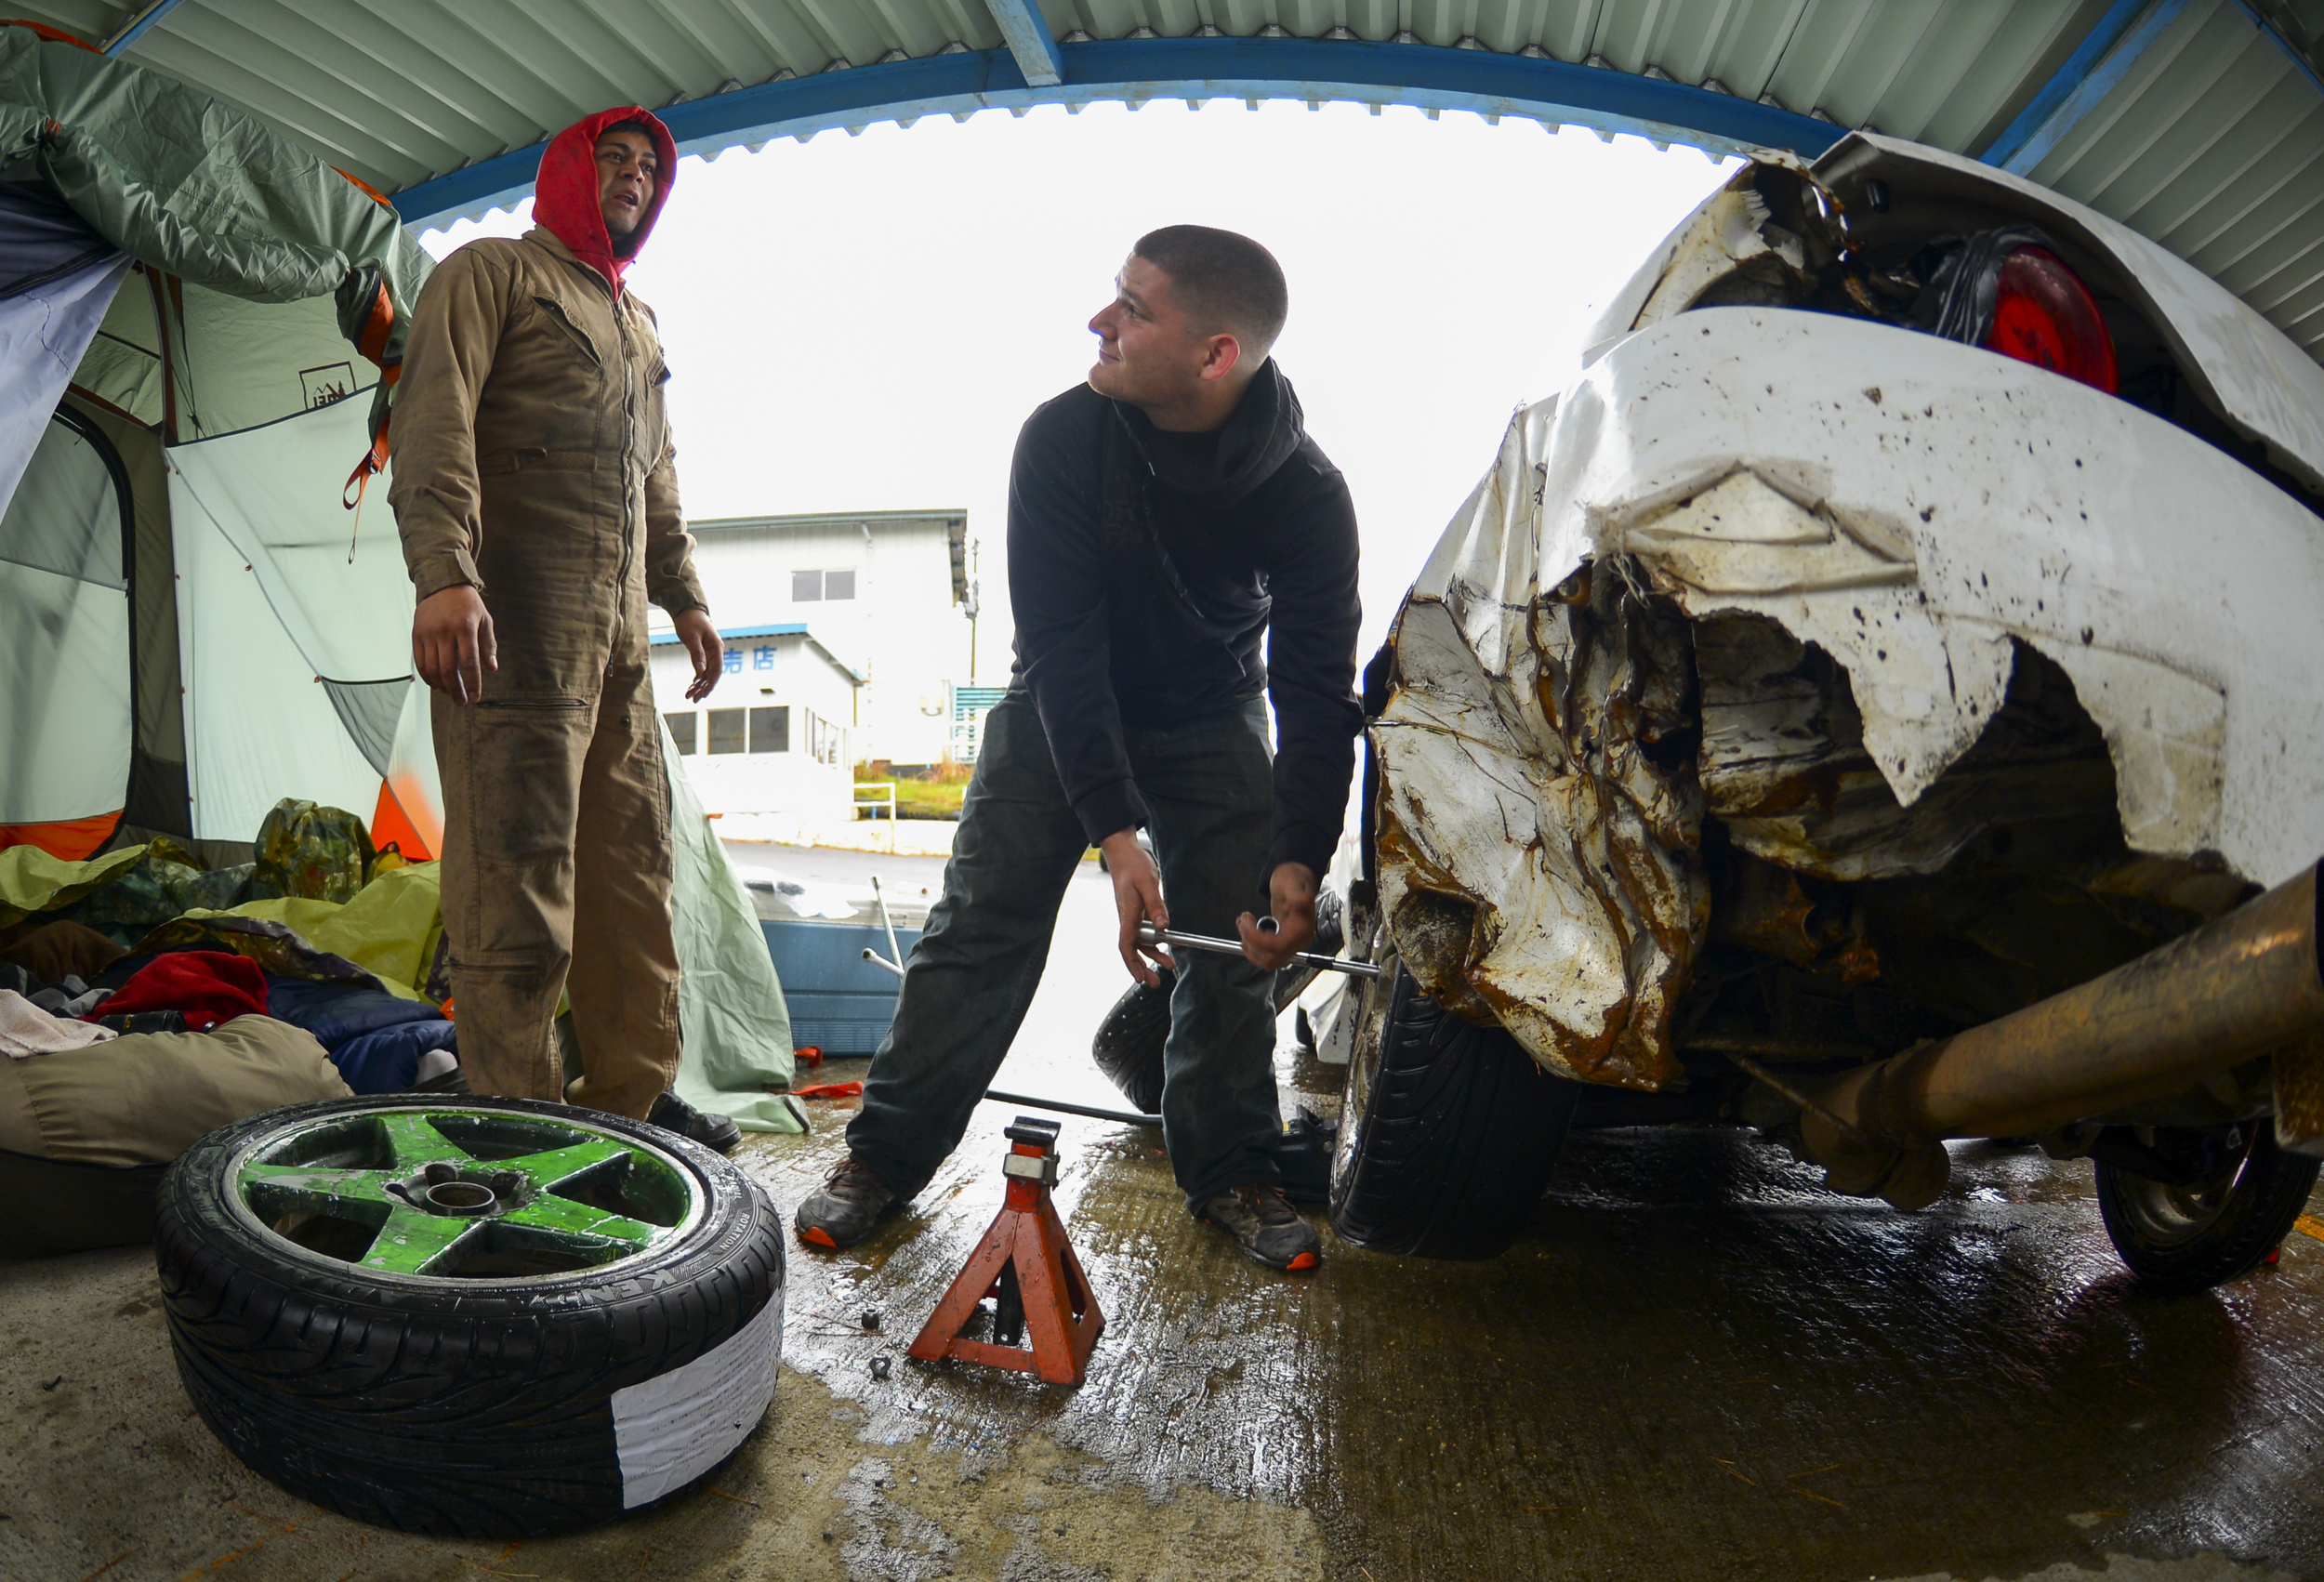 Senior Airman Joseph Galloway, 730th Air Mobility Squadron jet propulsion technician, talks to Angelo Manalastes, a drift driver, while changing the tire on his drift car at Ebisu Circuit, Japan, Nov. 14, 2015. Drifting often burns tires down so quickly that they have to be changed at least twice a day, and causes such extensive damage that the cars cannot be legally driven outside the race track. (U.S. Air Force photo by Airman 1st Class Elizabeth Baker/Released)